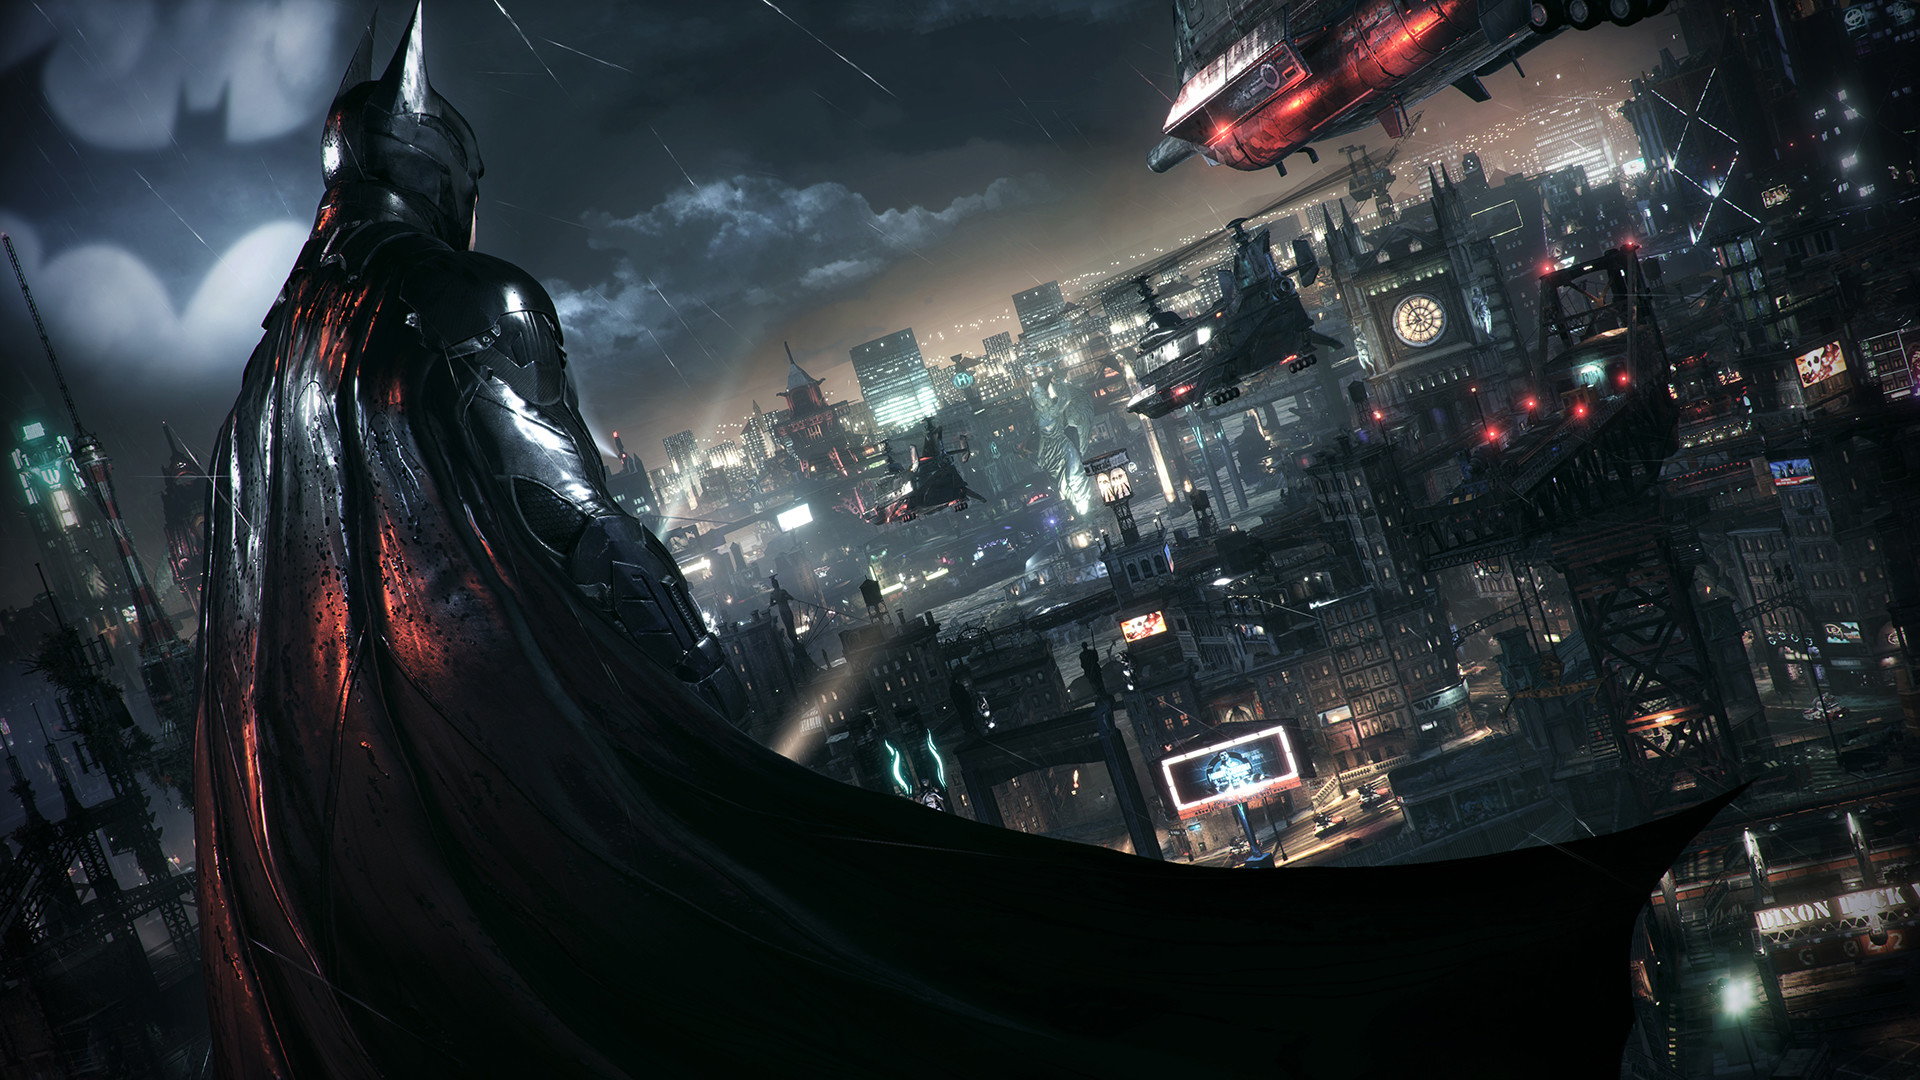 1920x1080 Batman Arkham Knight Wallpaper On Wallpaperget Com